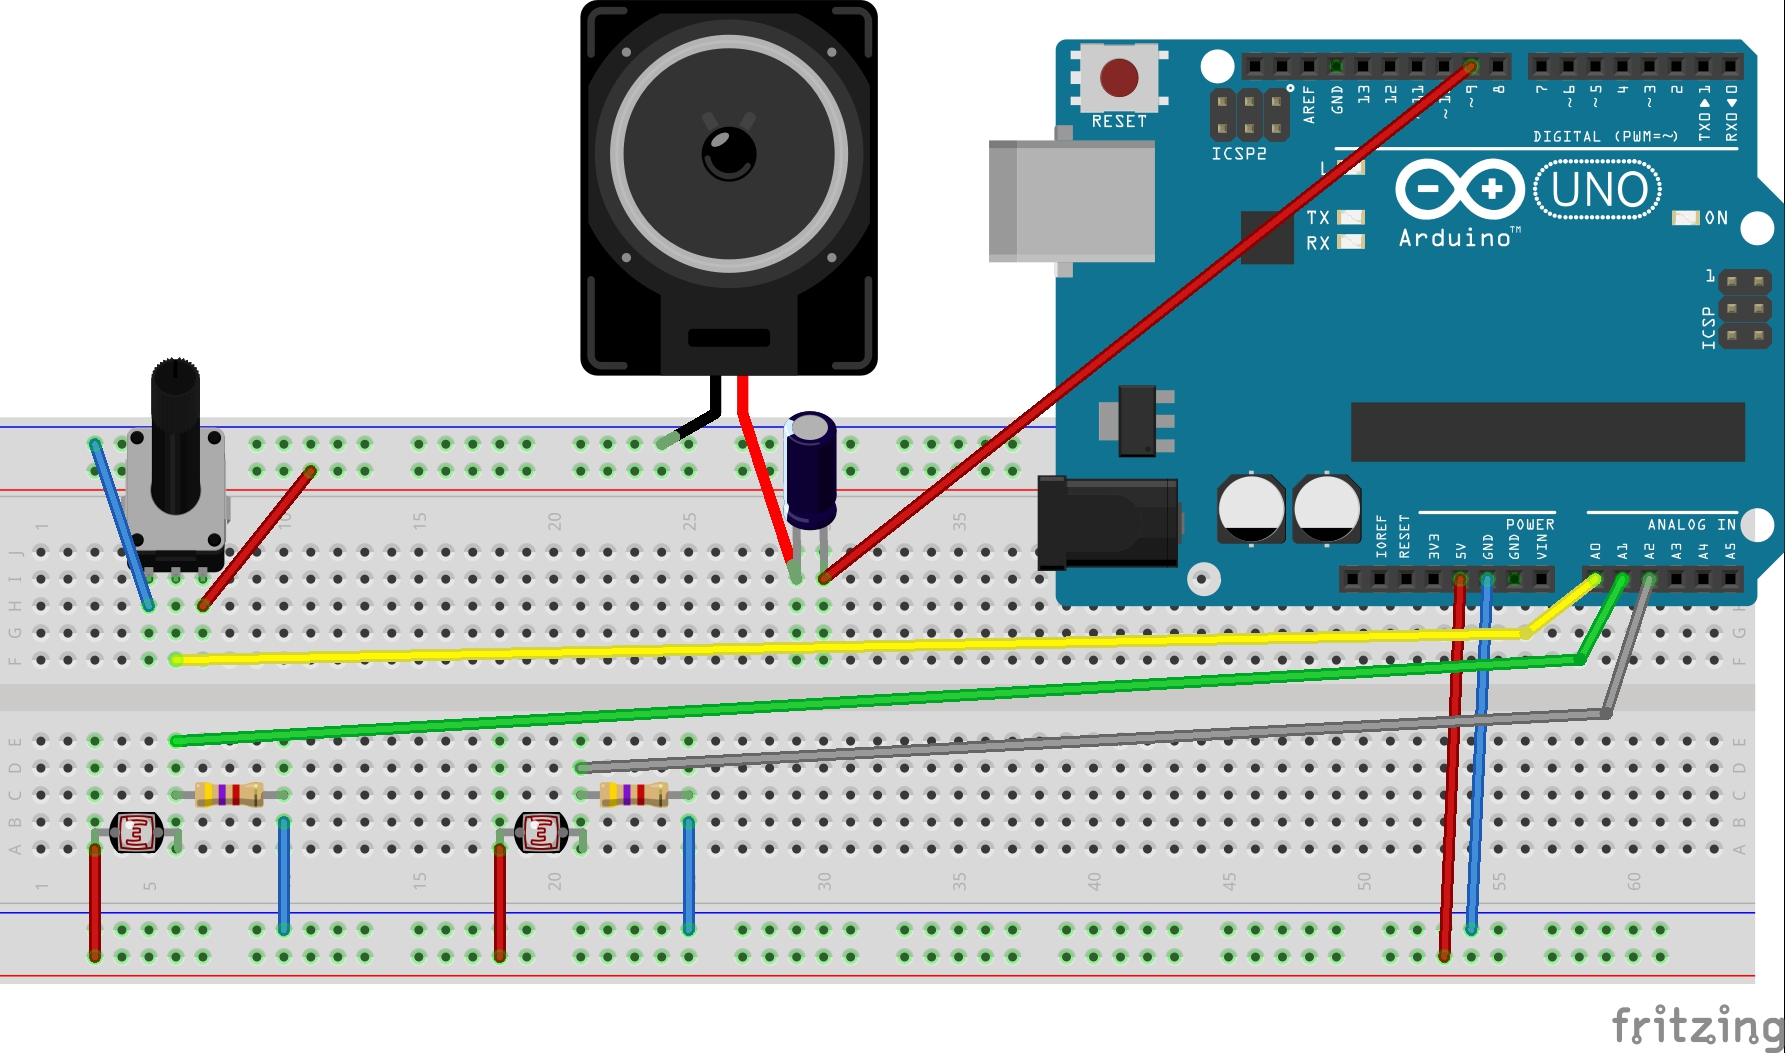 Synth Diy How To Start Syntherjack Learn Build The Atari Punk Console Electronic Circuits Arduino Fm Using Mozzi Library Breadboard Schematic Source Soundobjectwordpresscom